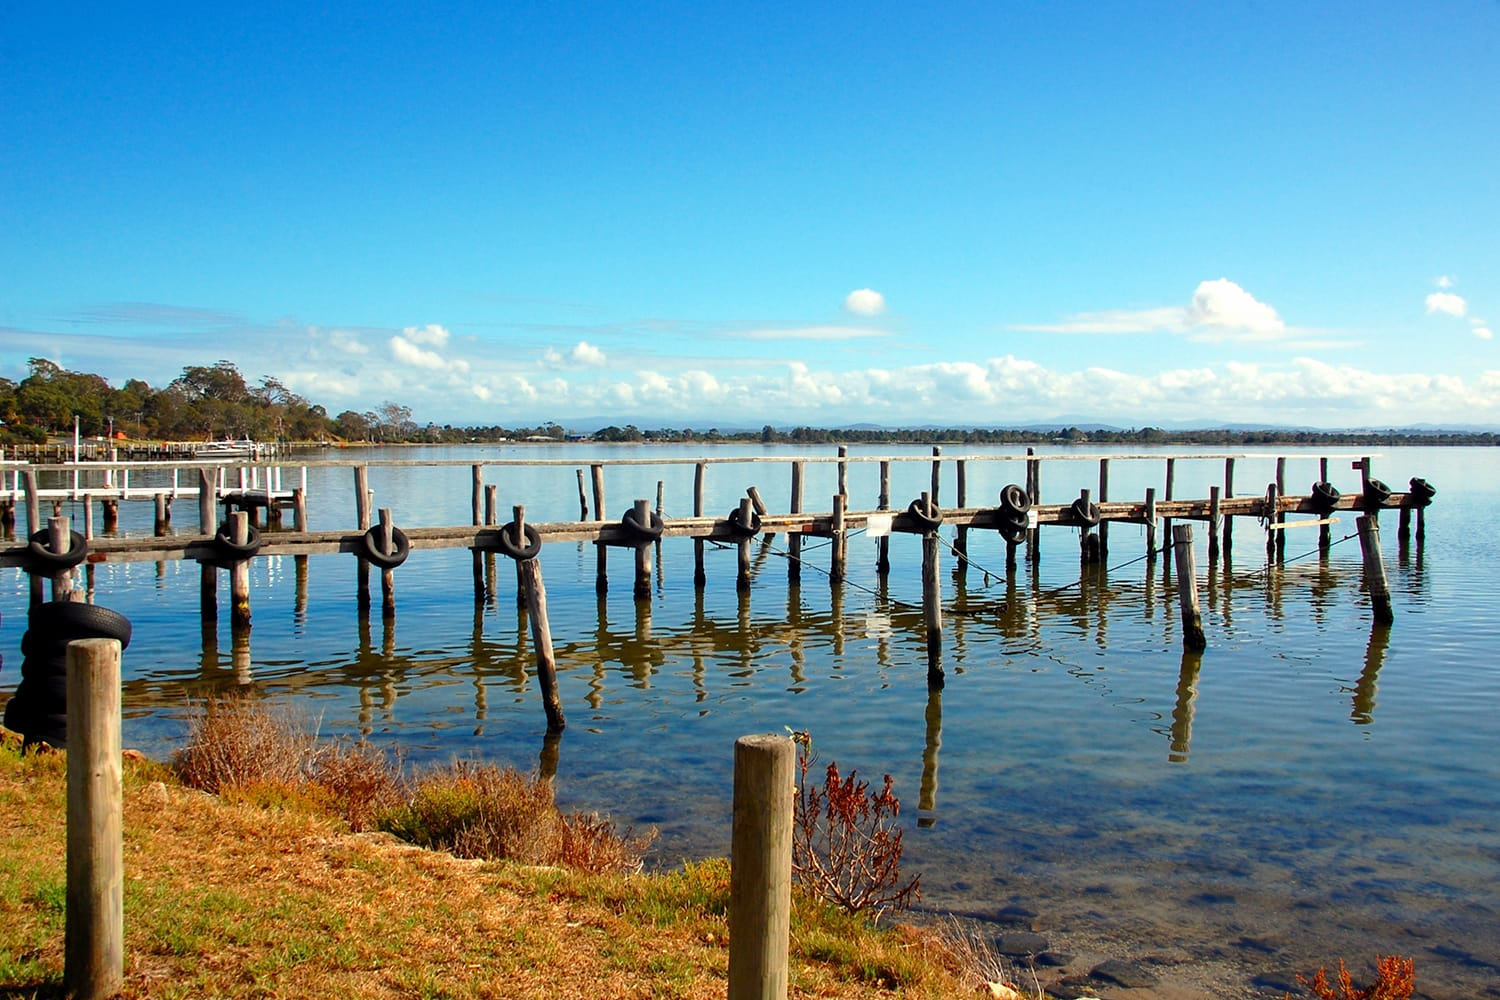 Fishing pier, Eagle Point, small town in Victoria, Australia known by its Lake King, reserve and bushland.